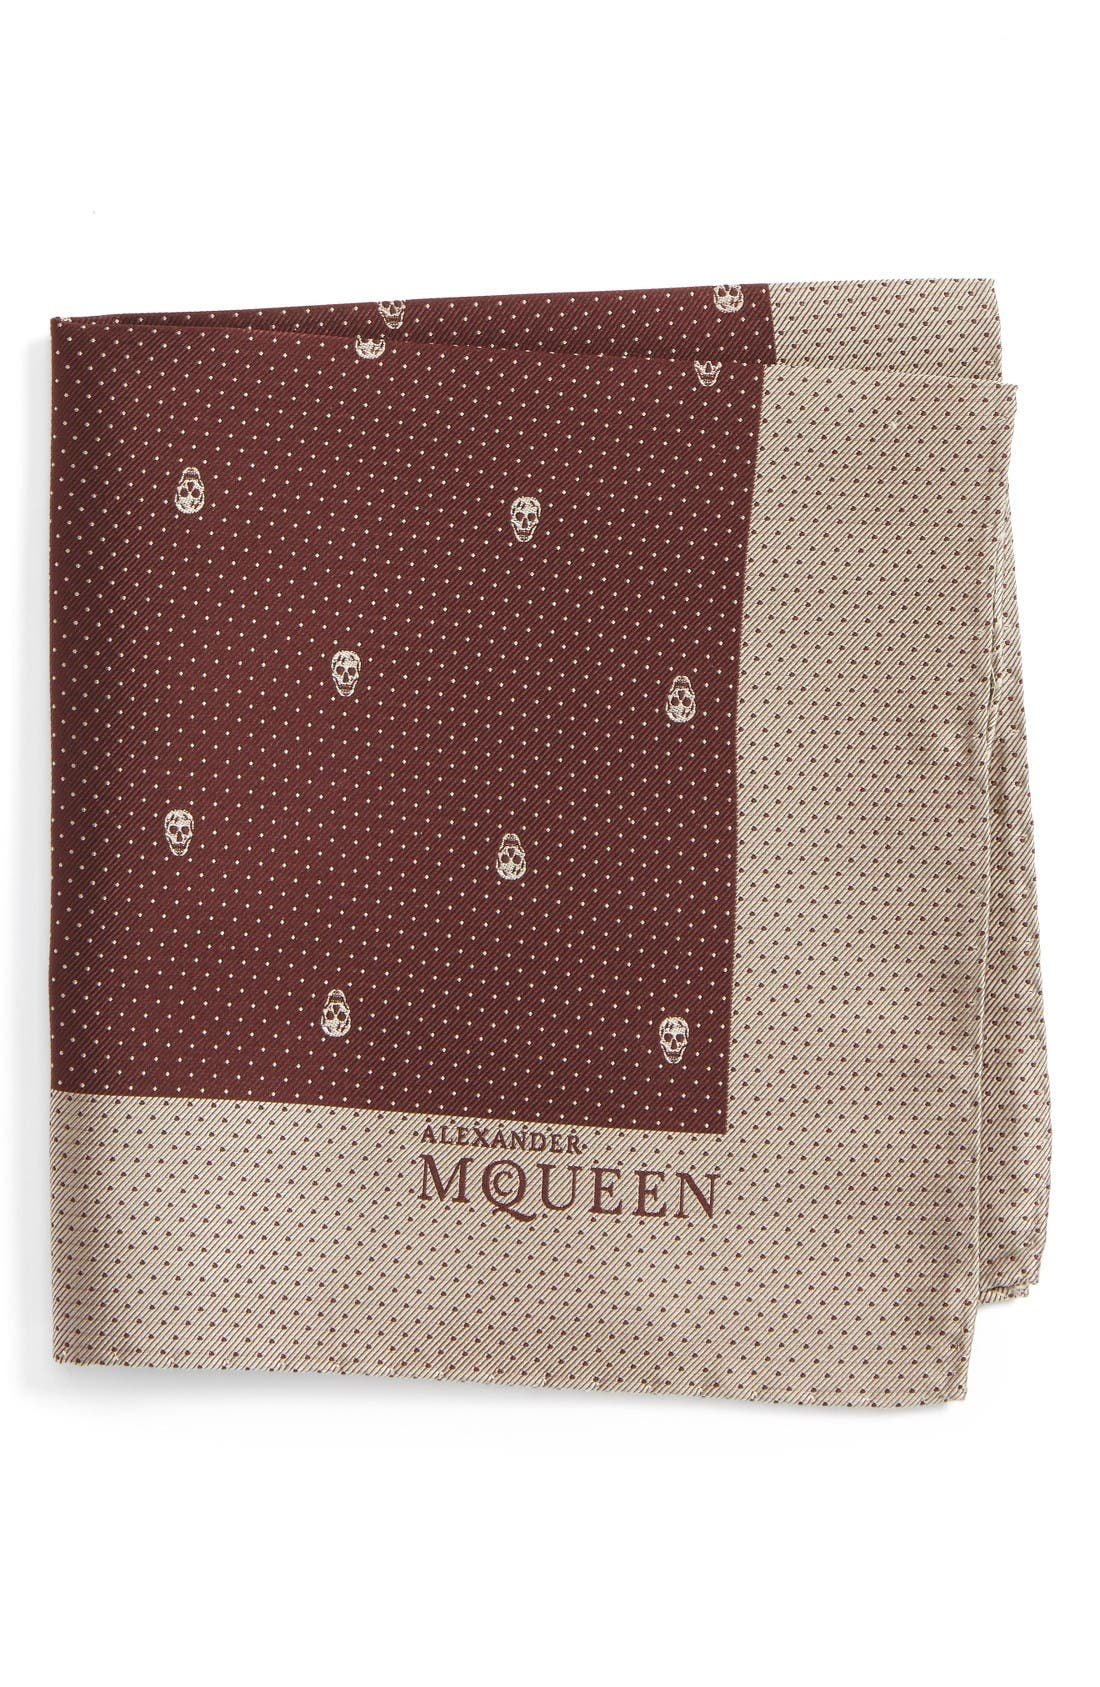 Main Image - Alexander McQueen Skull Dot Silk Pocket Square